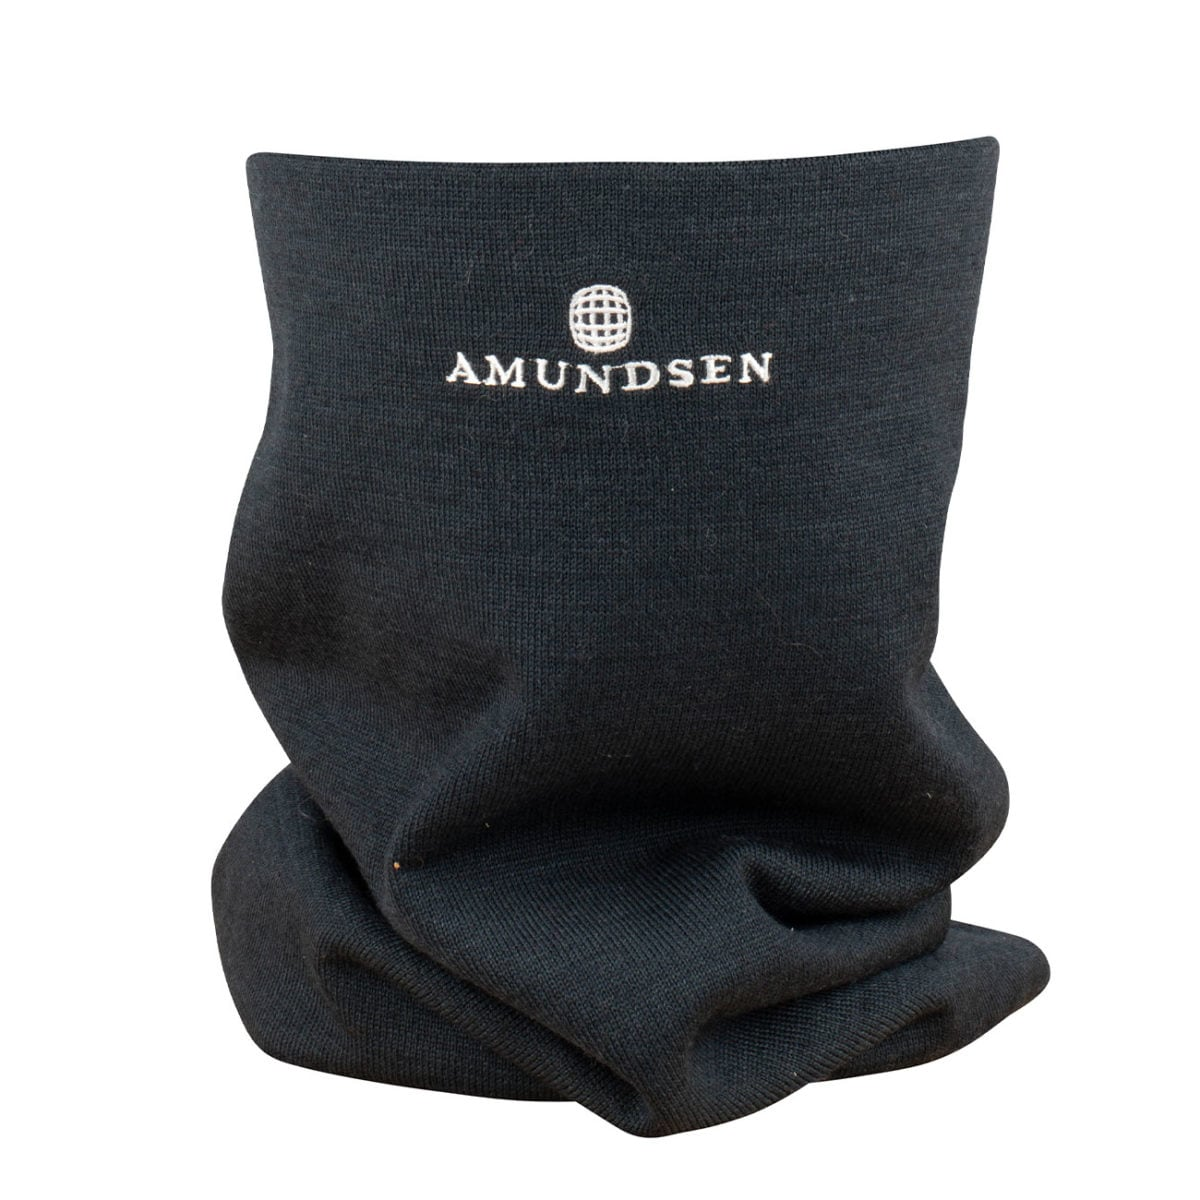 Amundsen Sports 5MILA Neckwarmer